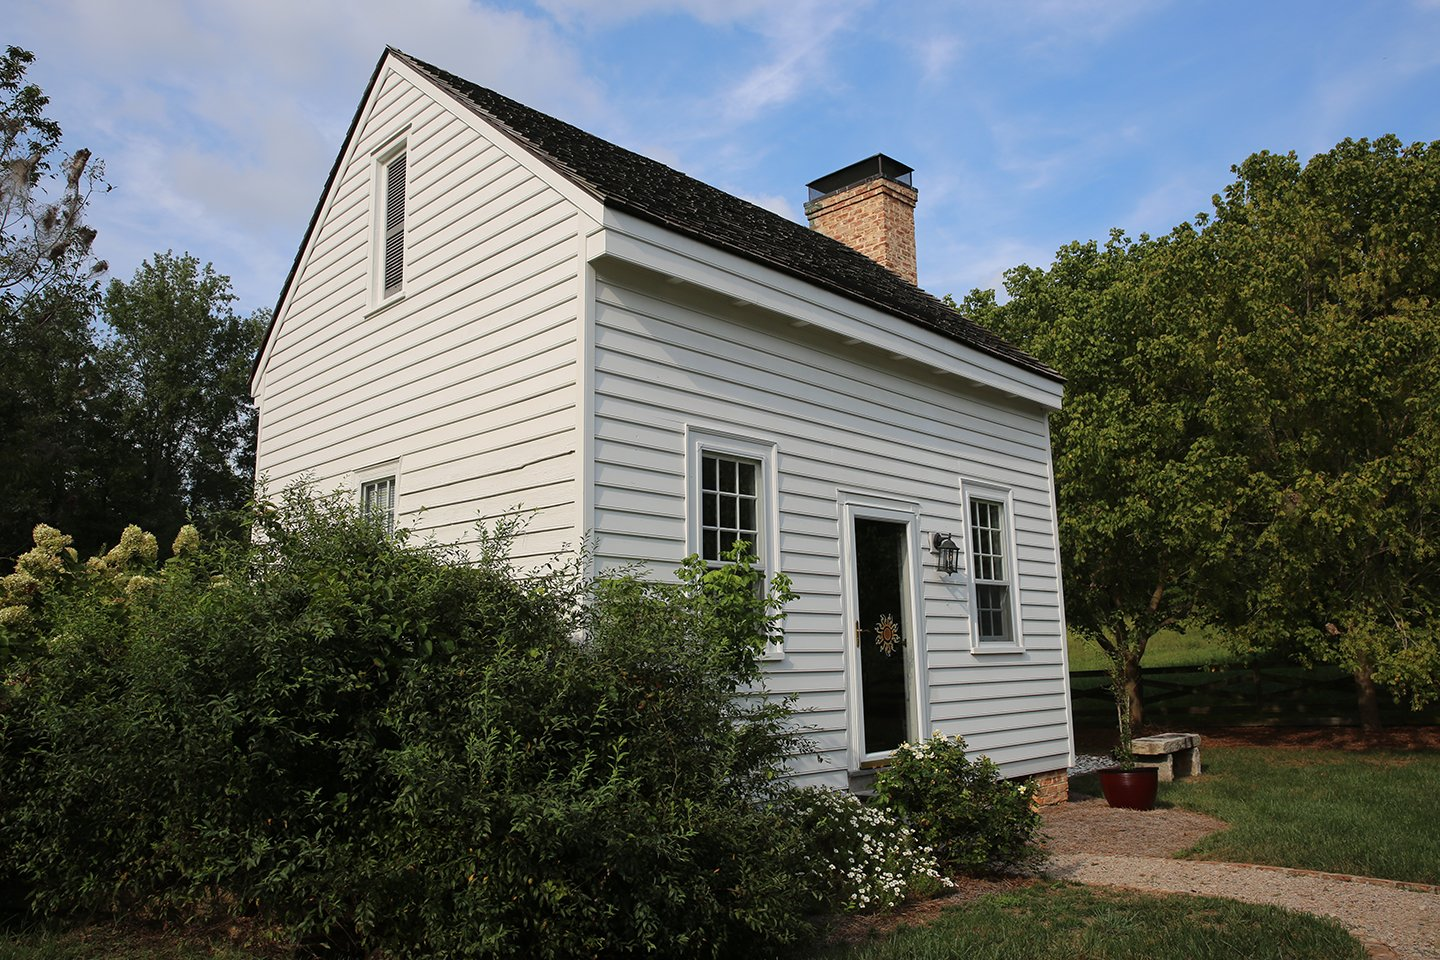 Pictured is the original school house built with the house.